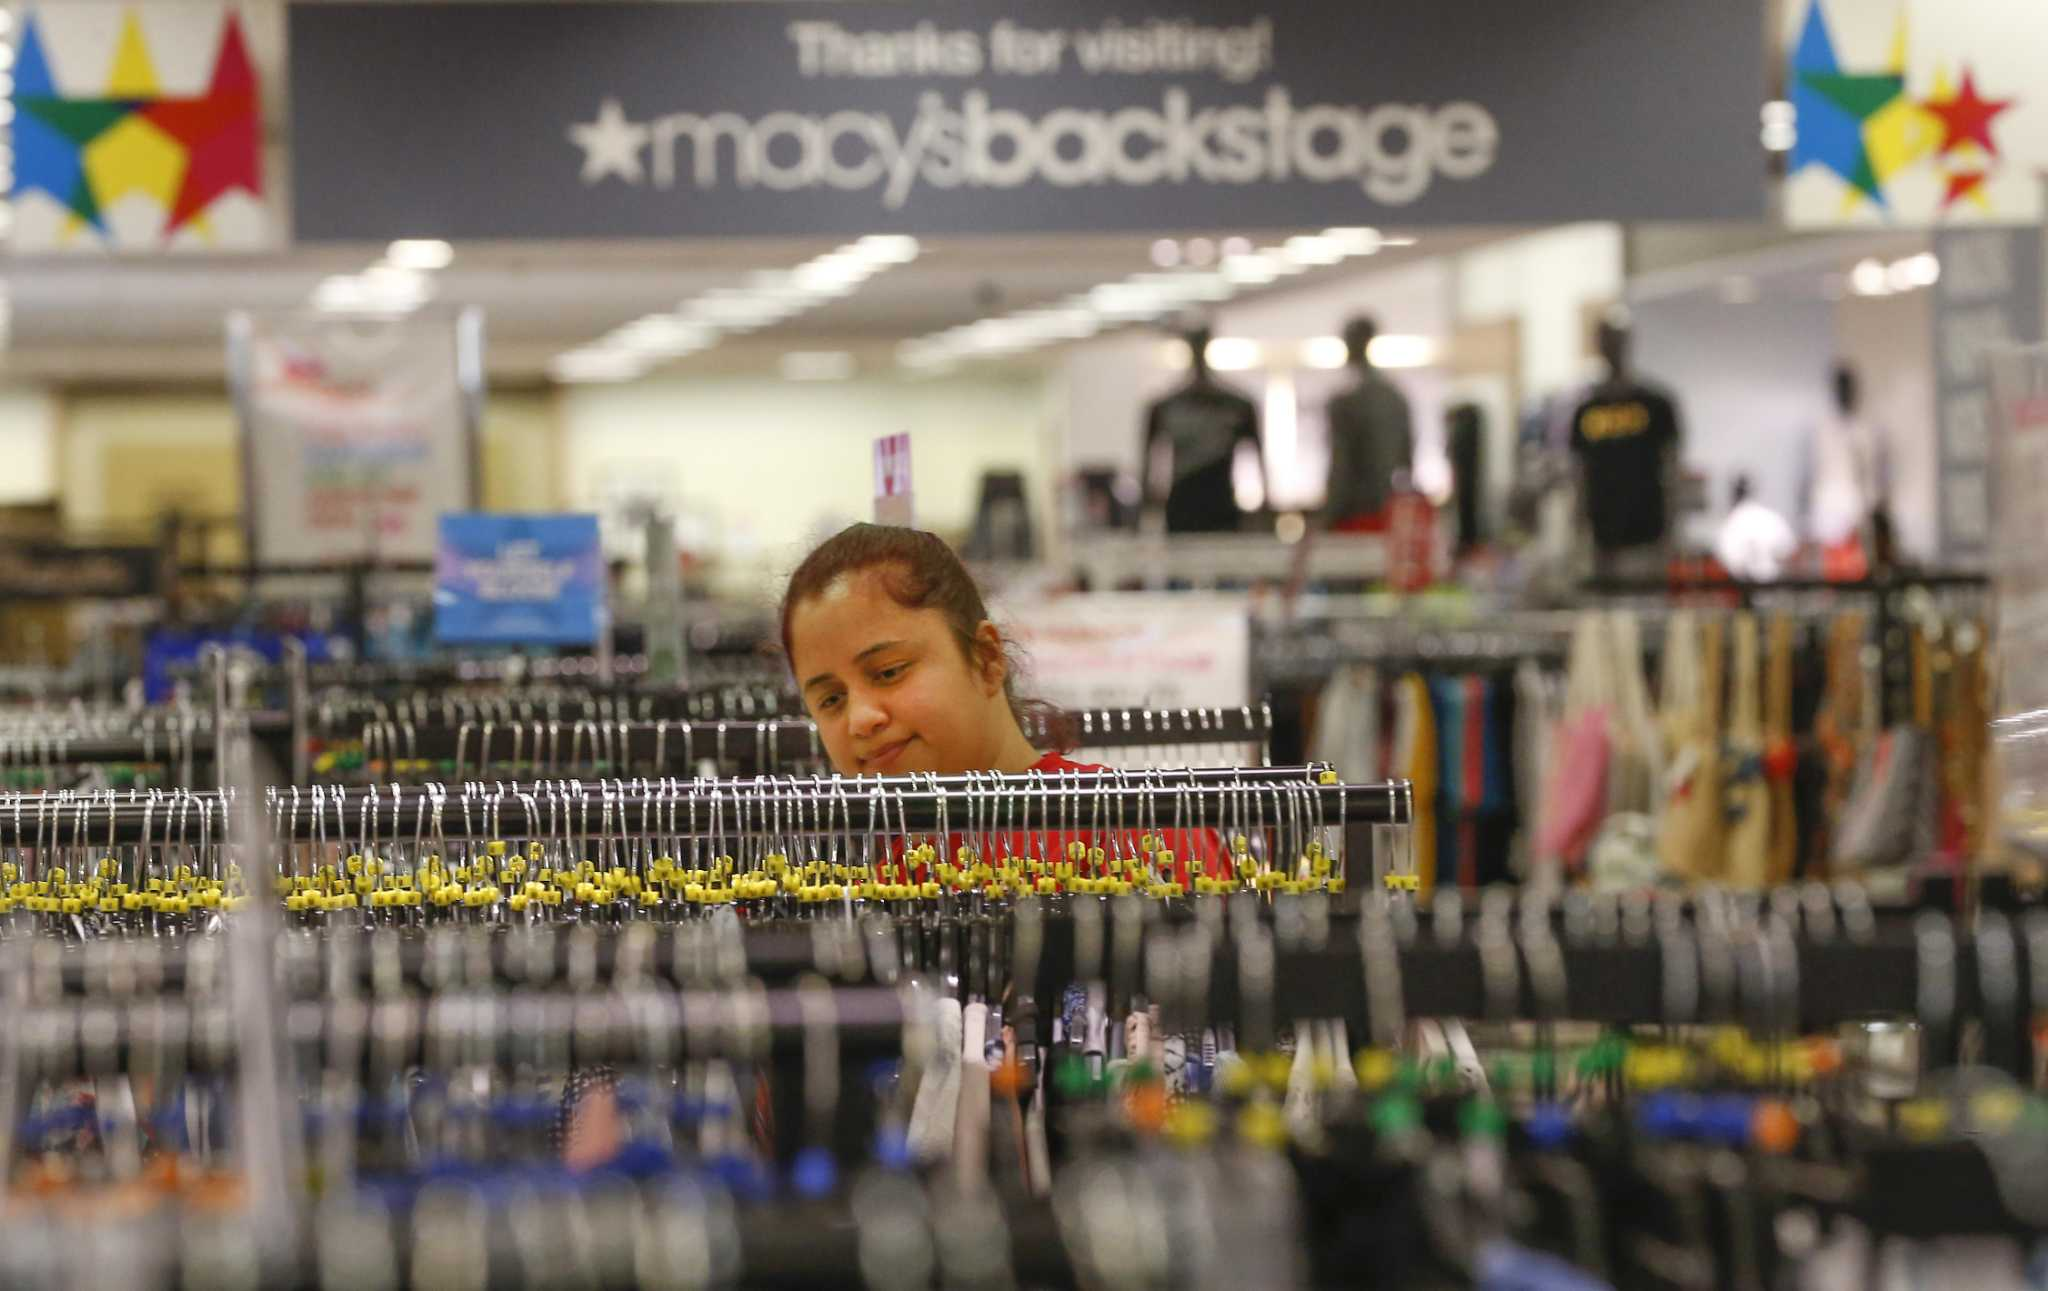 8ed7820c96b Macy's Backstage to open in Willowbrook Mall this month - Houston ...